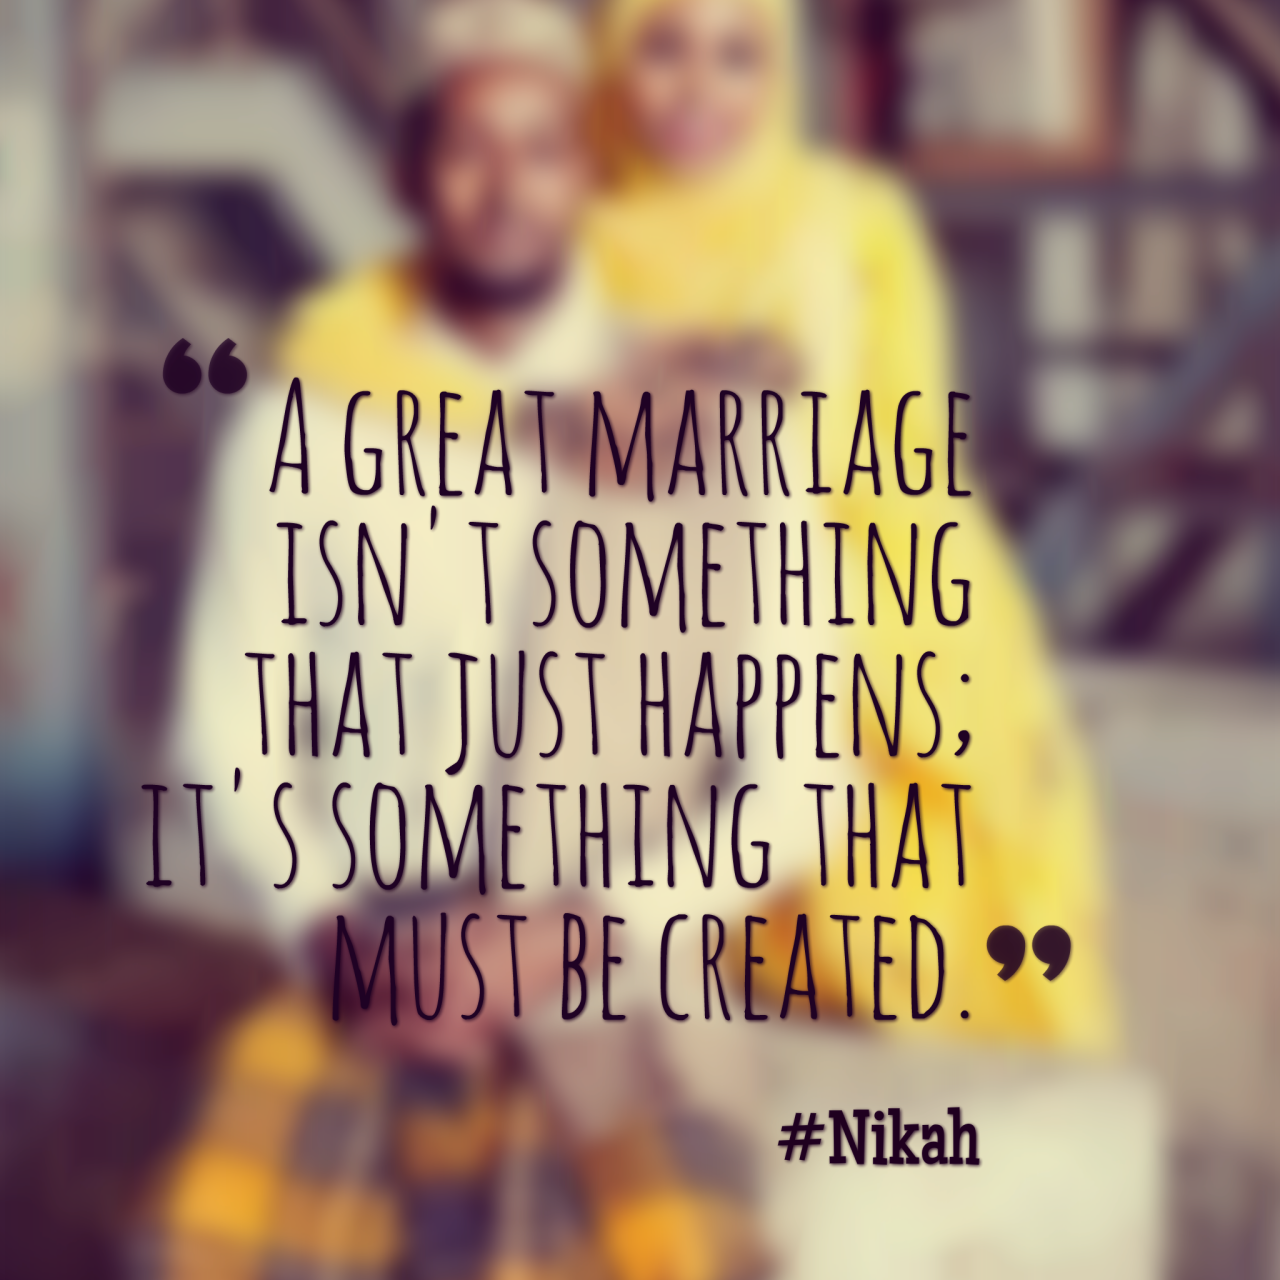 Islamic Wedding Quotes And Sayings: Pin By Islamwich On Islamic Guide